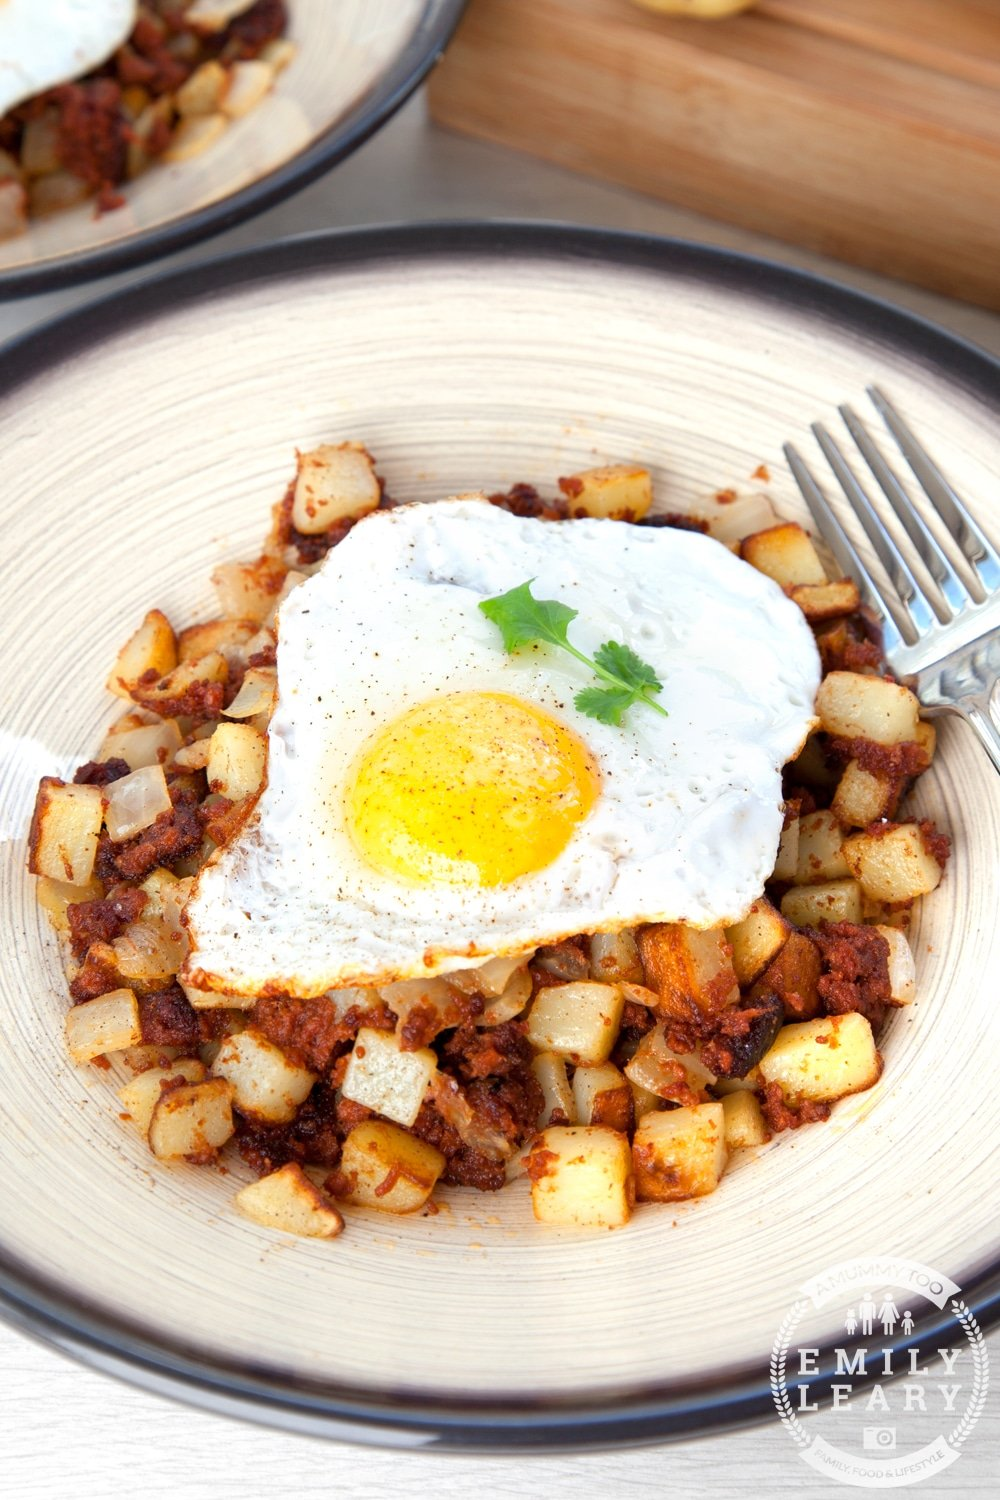 Corned beef hash is a classic, so why not spice up your lunchtime with this chilli version? It's easy to make and utterly delicious.